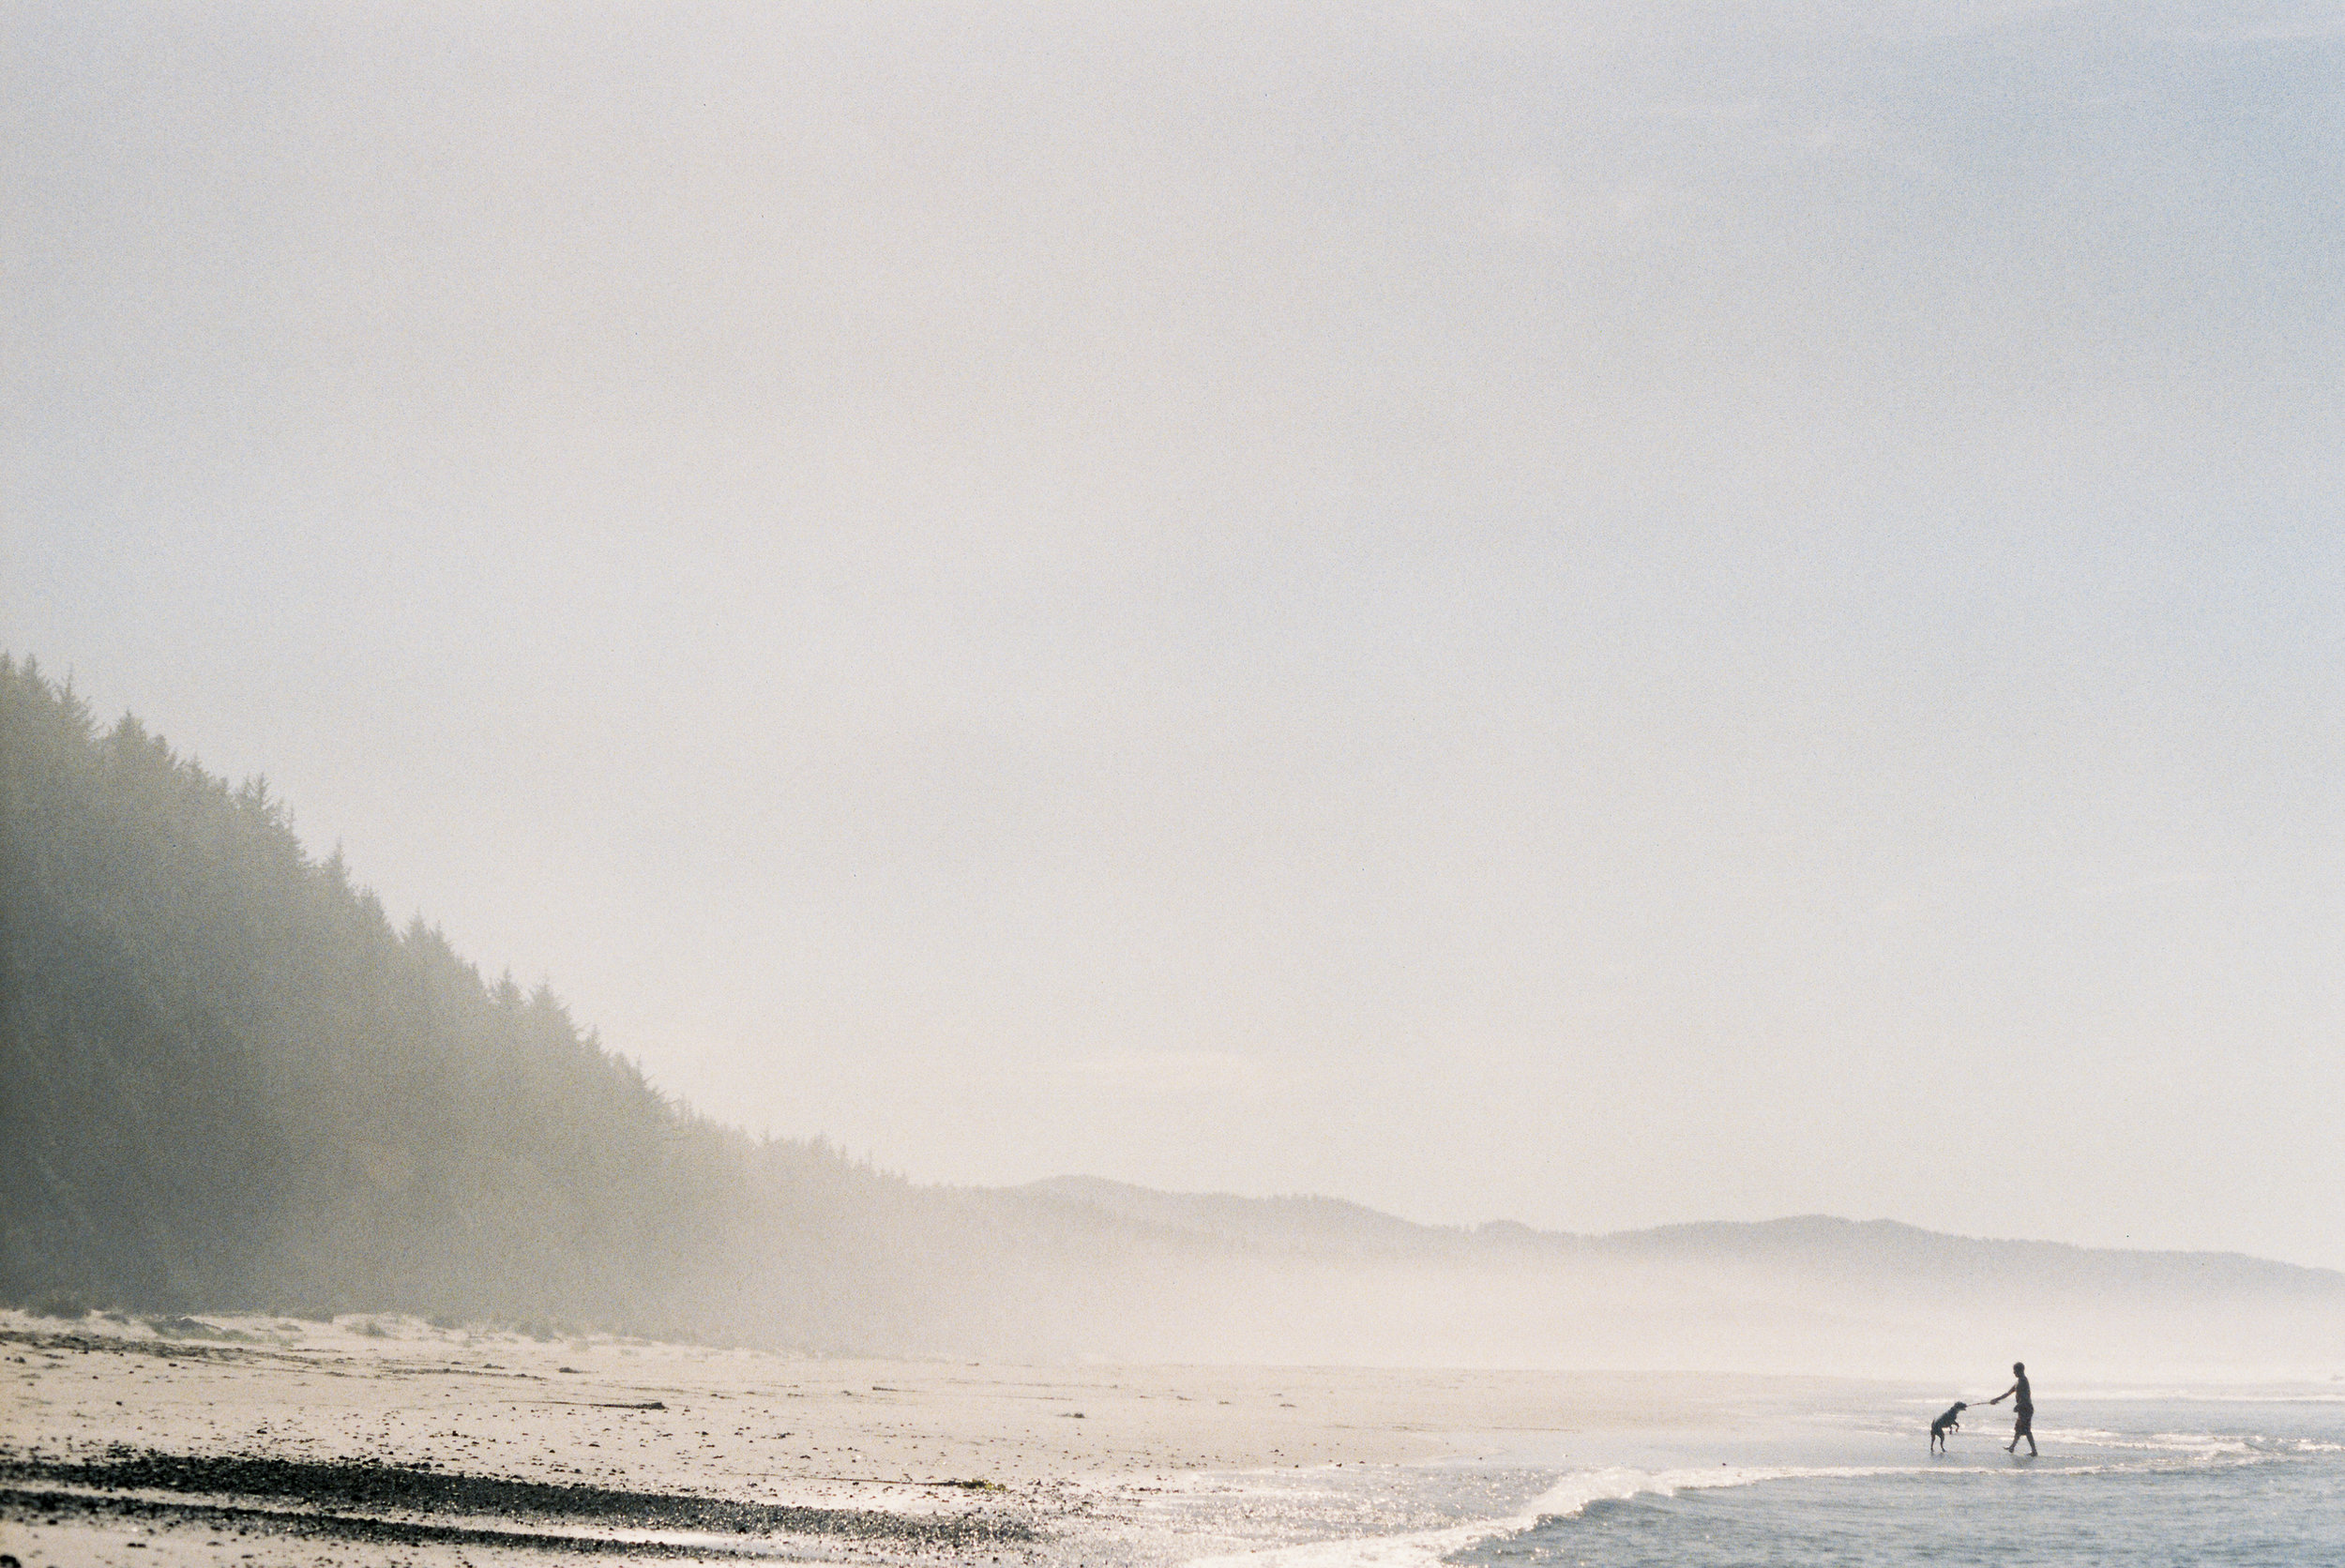 Secluded beach, part of the Oregon Coast Trail near Cape Lookout, OR